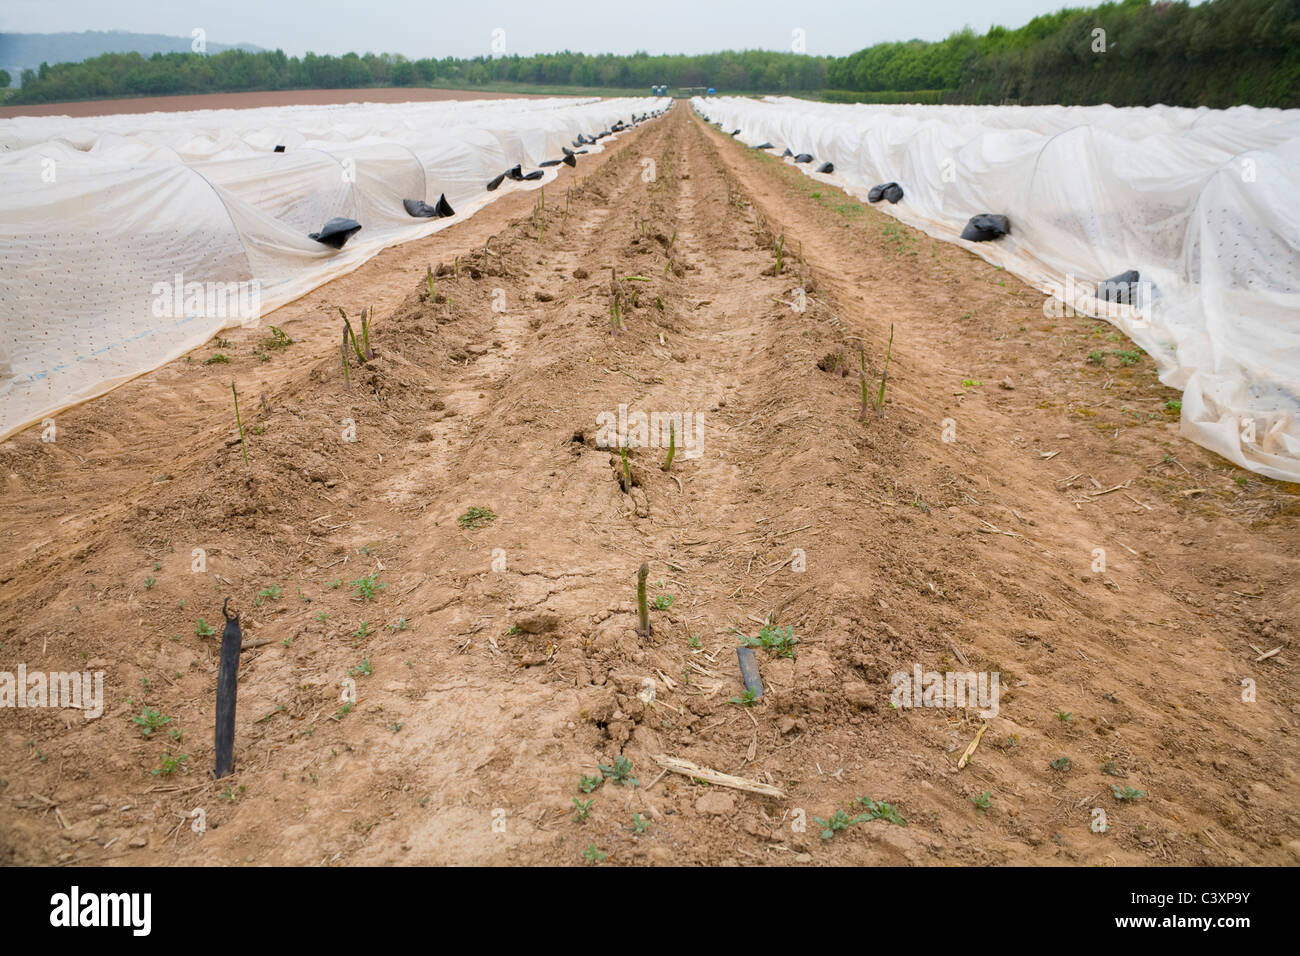 Herefordshire Plastic sheeting draped over metal hoops to protect asparagus plants one line cleared ready for picking Stock Photo